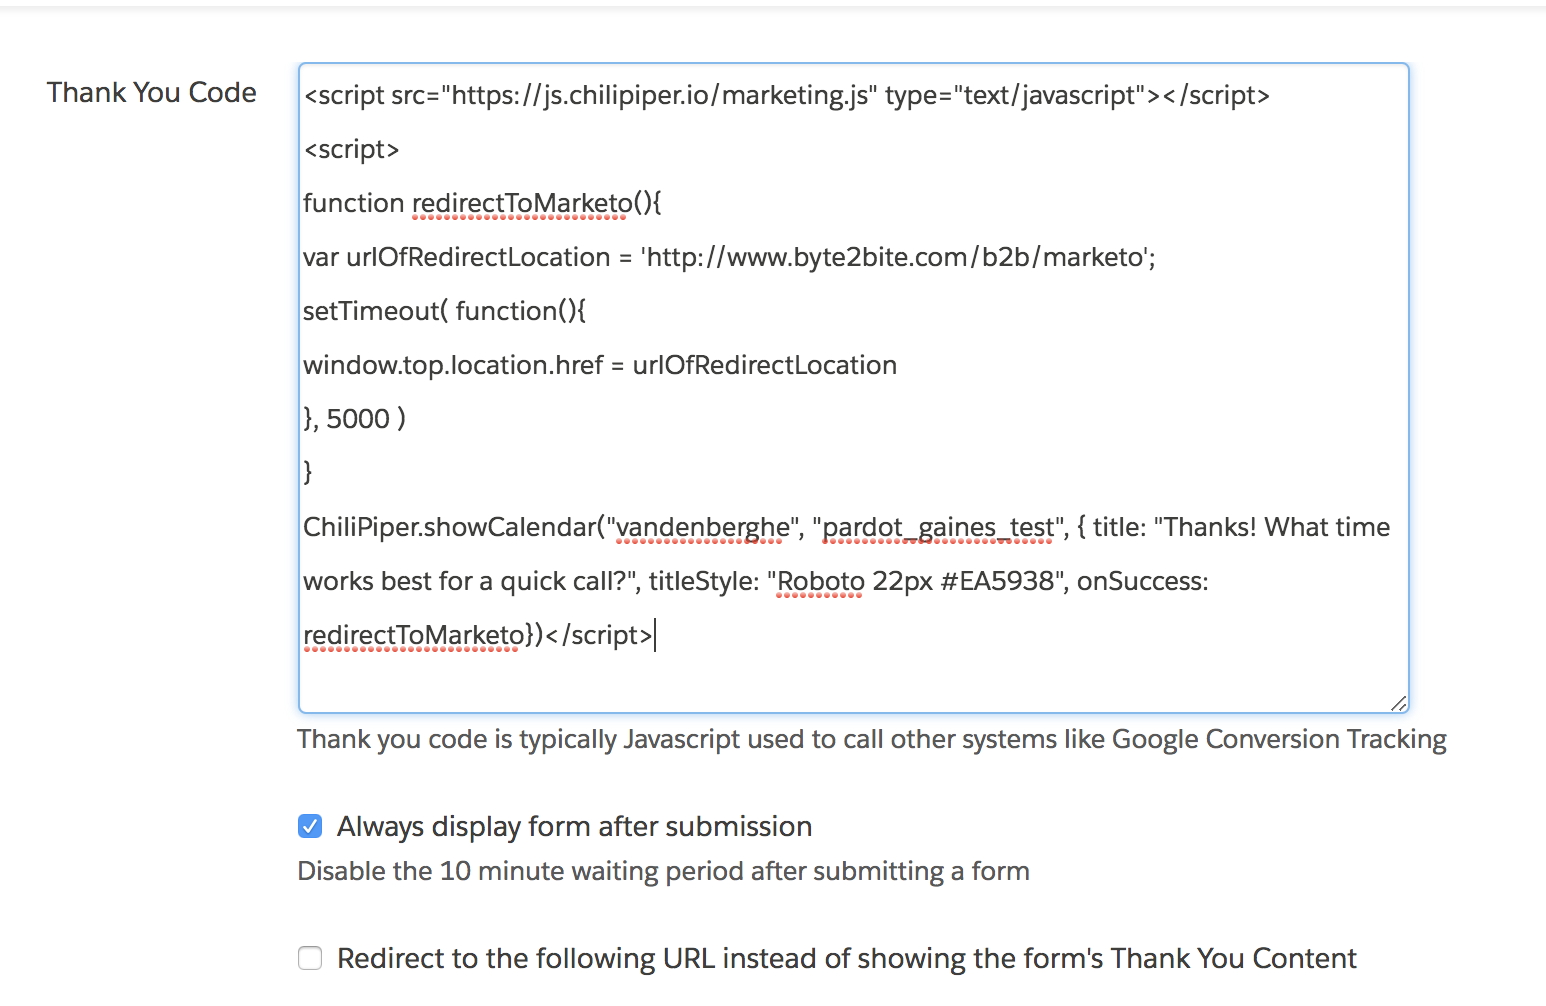 Redirecting Parent page from Pardot iFrame - Chili Piper Knowledge Base